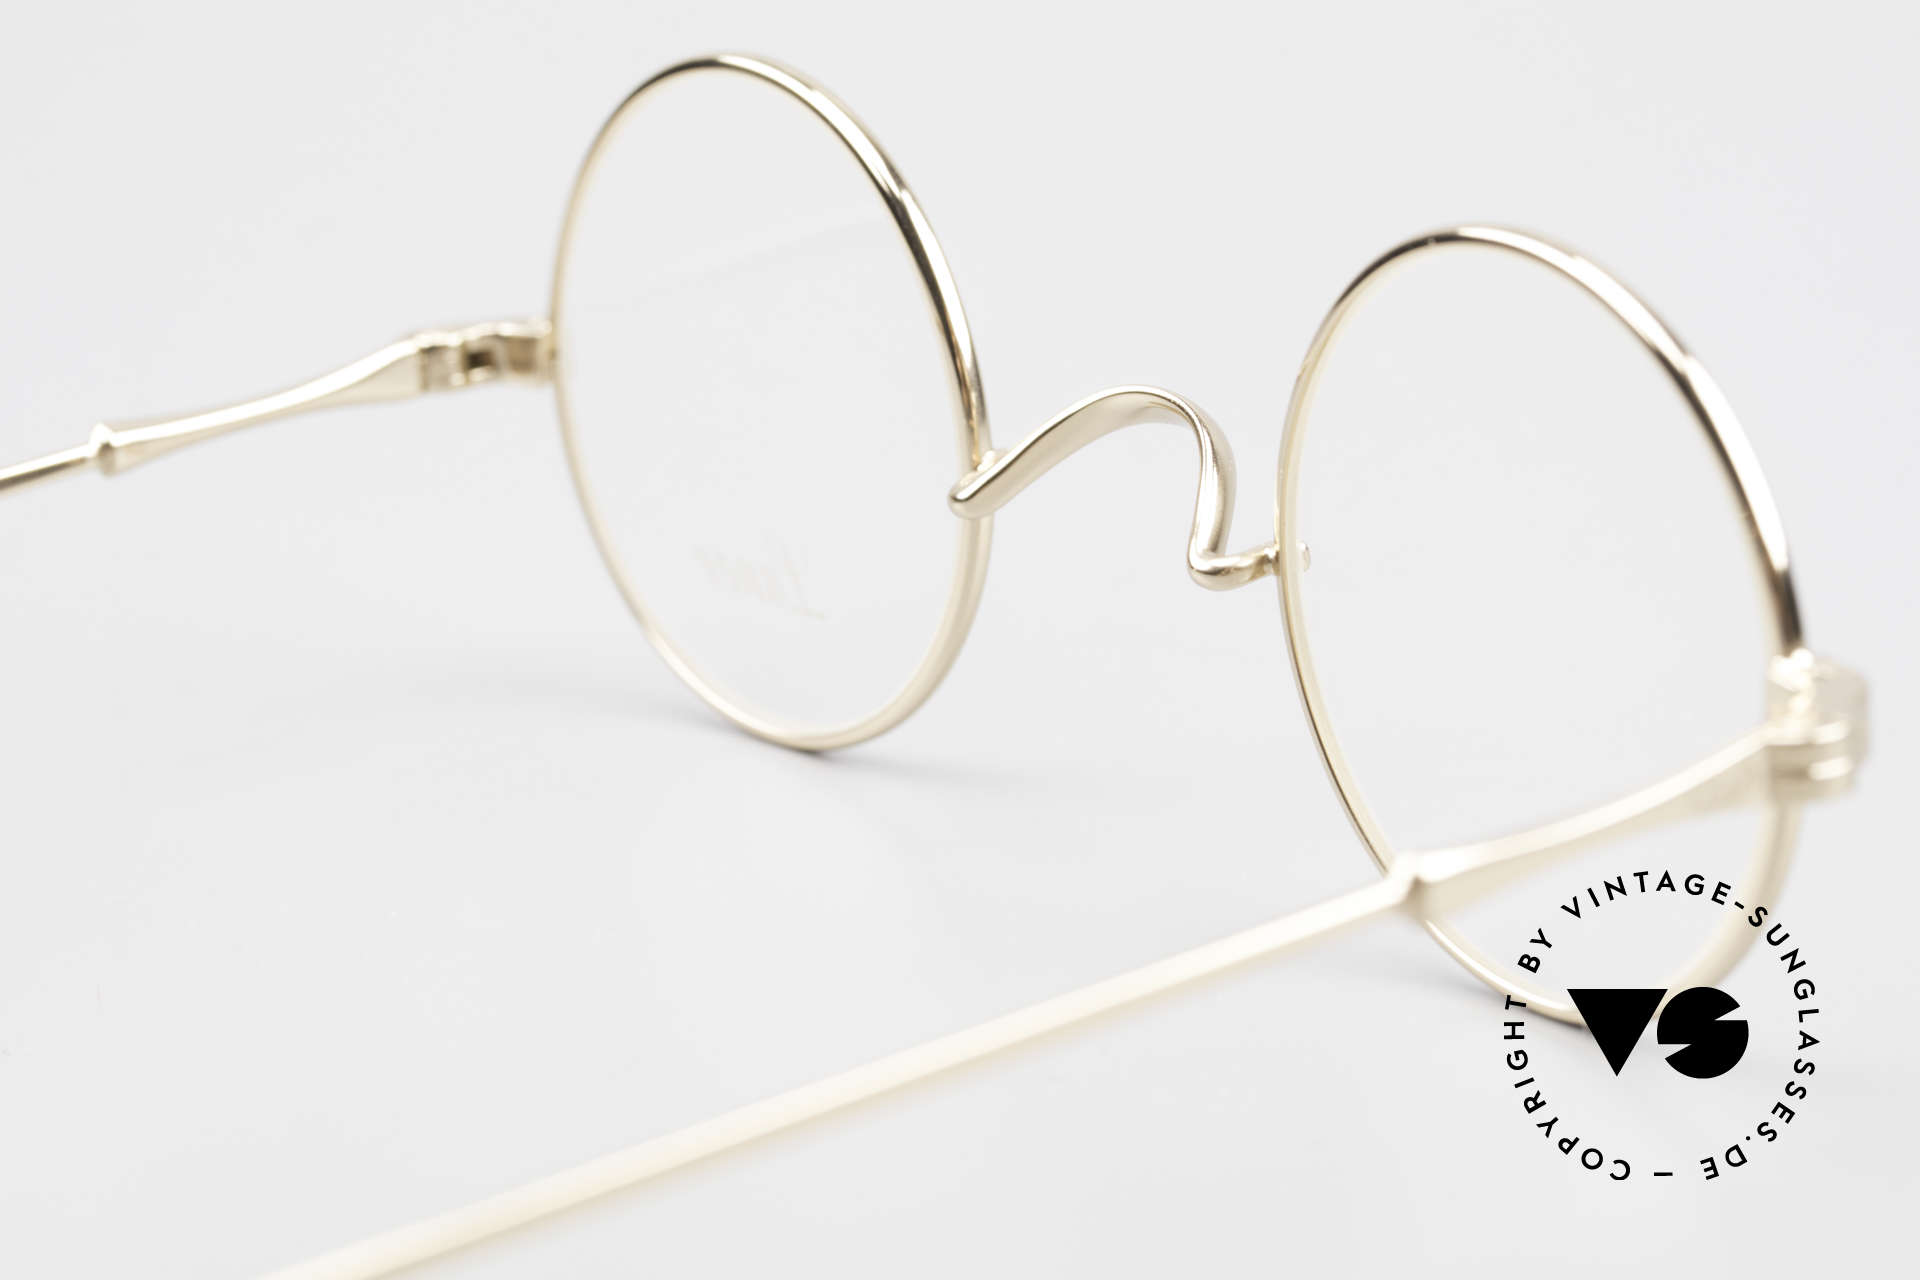 Lunor II 12 Small Round Gold Glasses, this quality frame can be glazed with lenses of any kind, Made for Men and Women